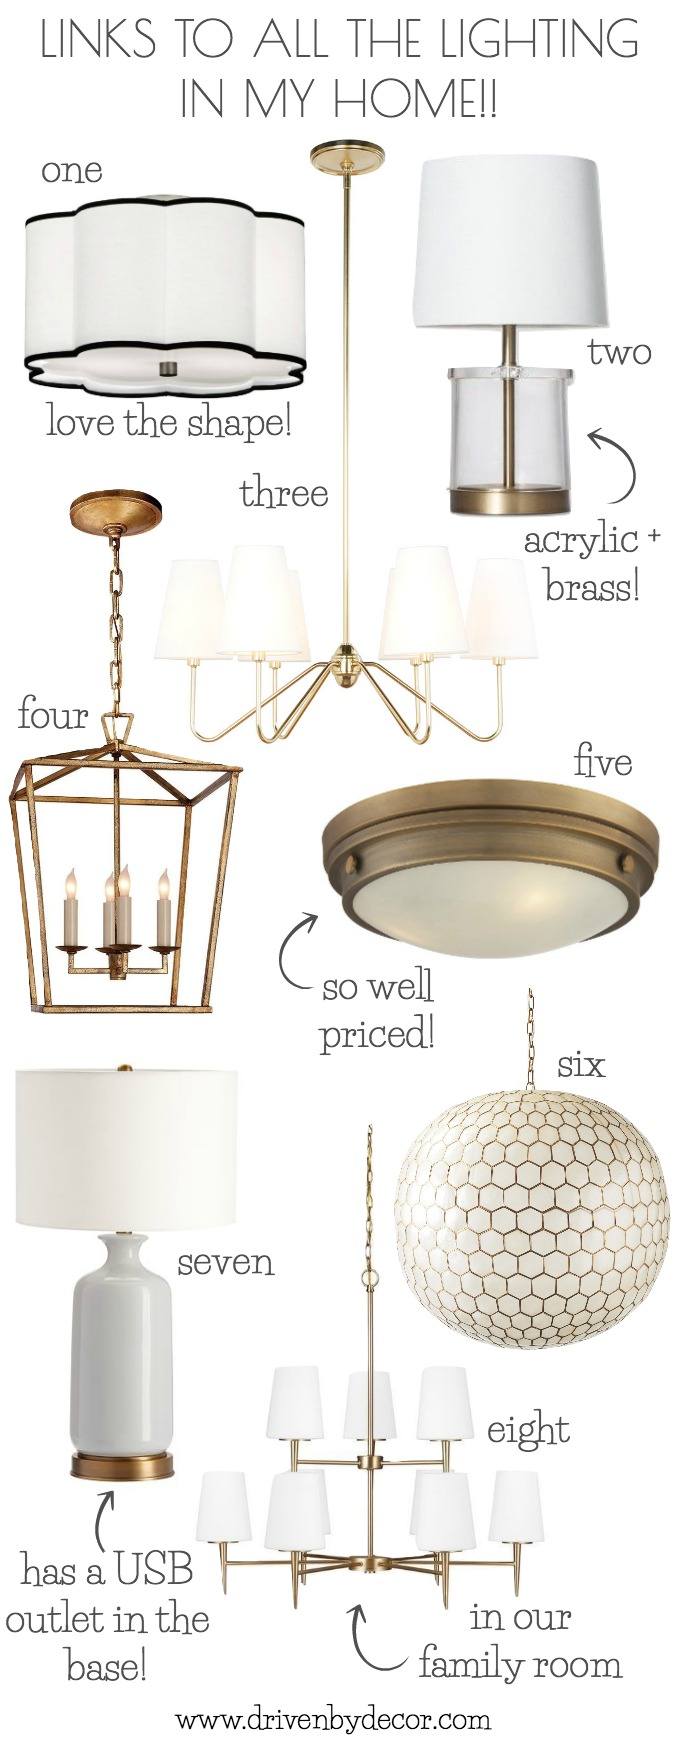 Love all the the light fixtures in her home!! They're all sourced in this helpful post on favorite lighting!